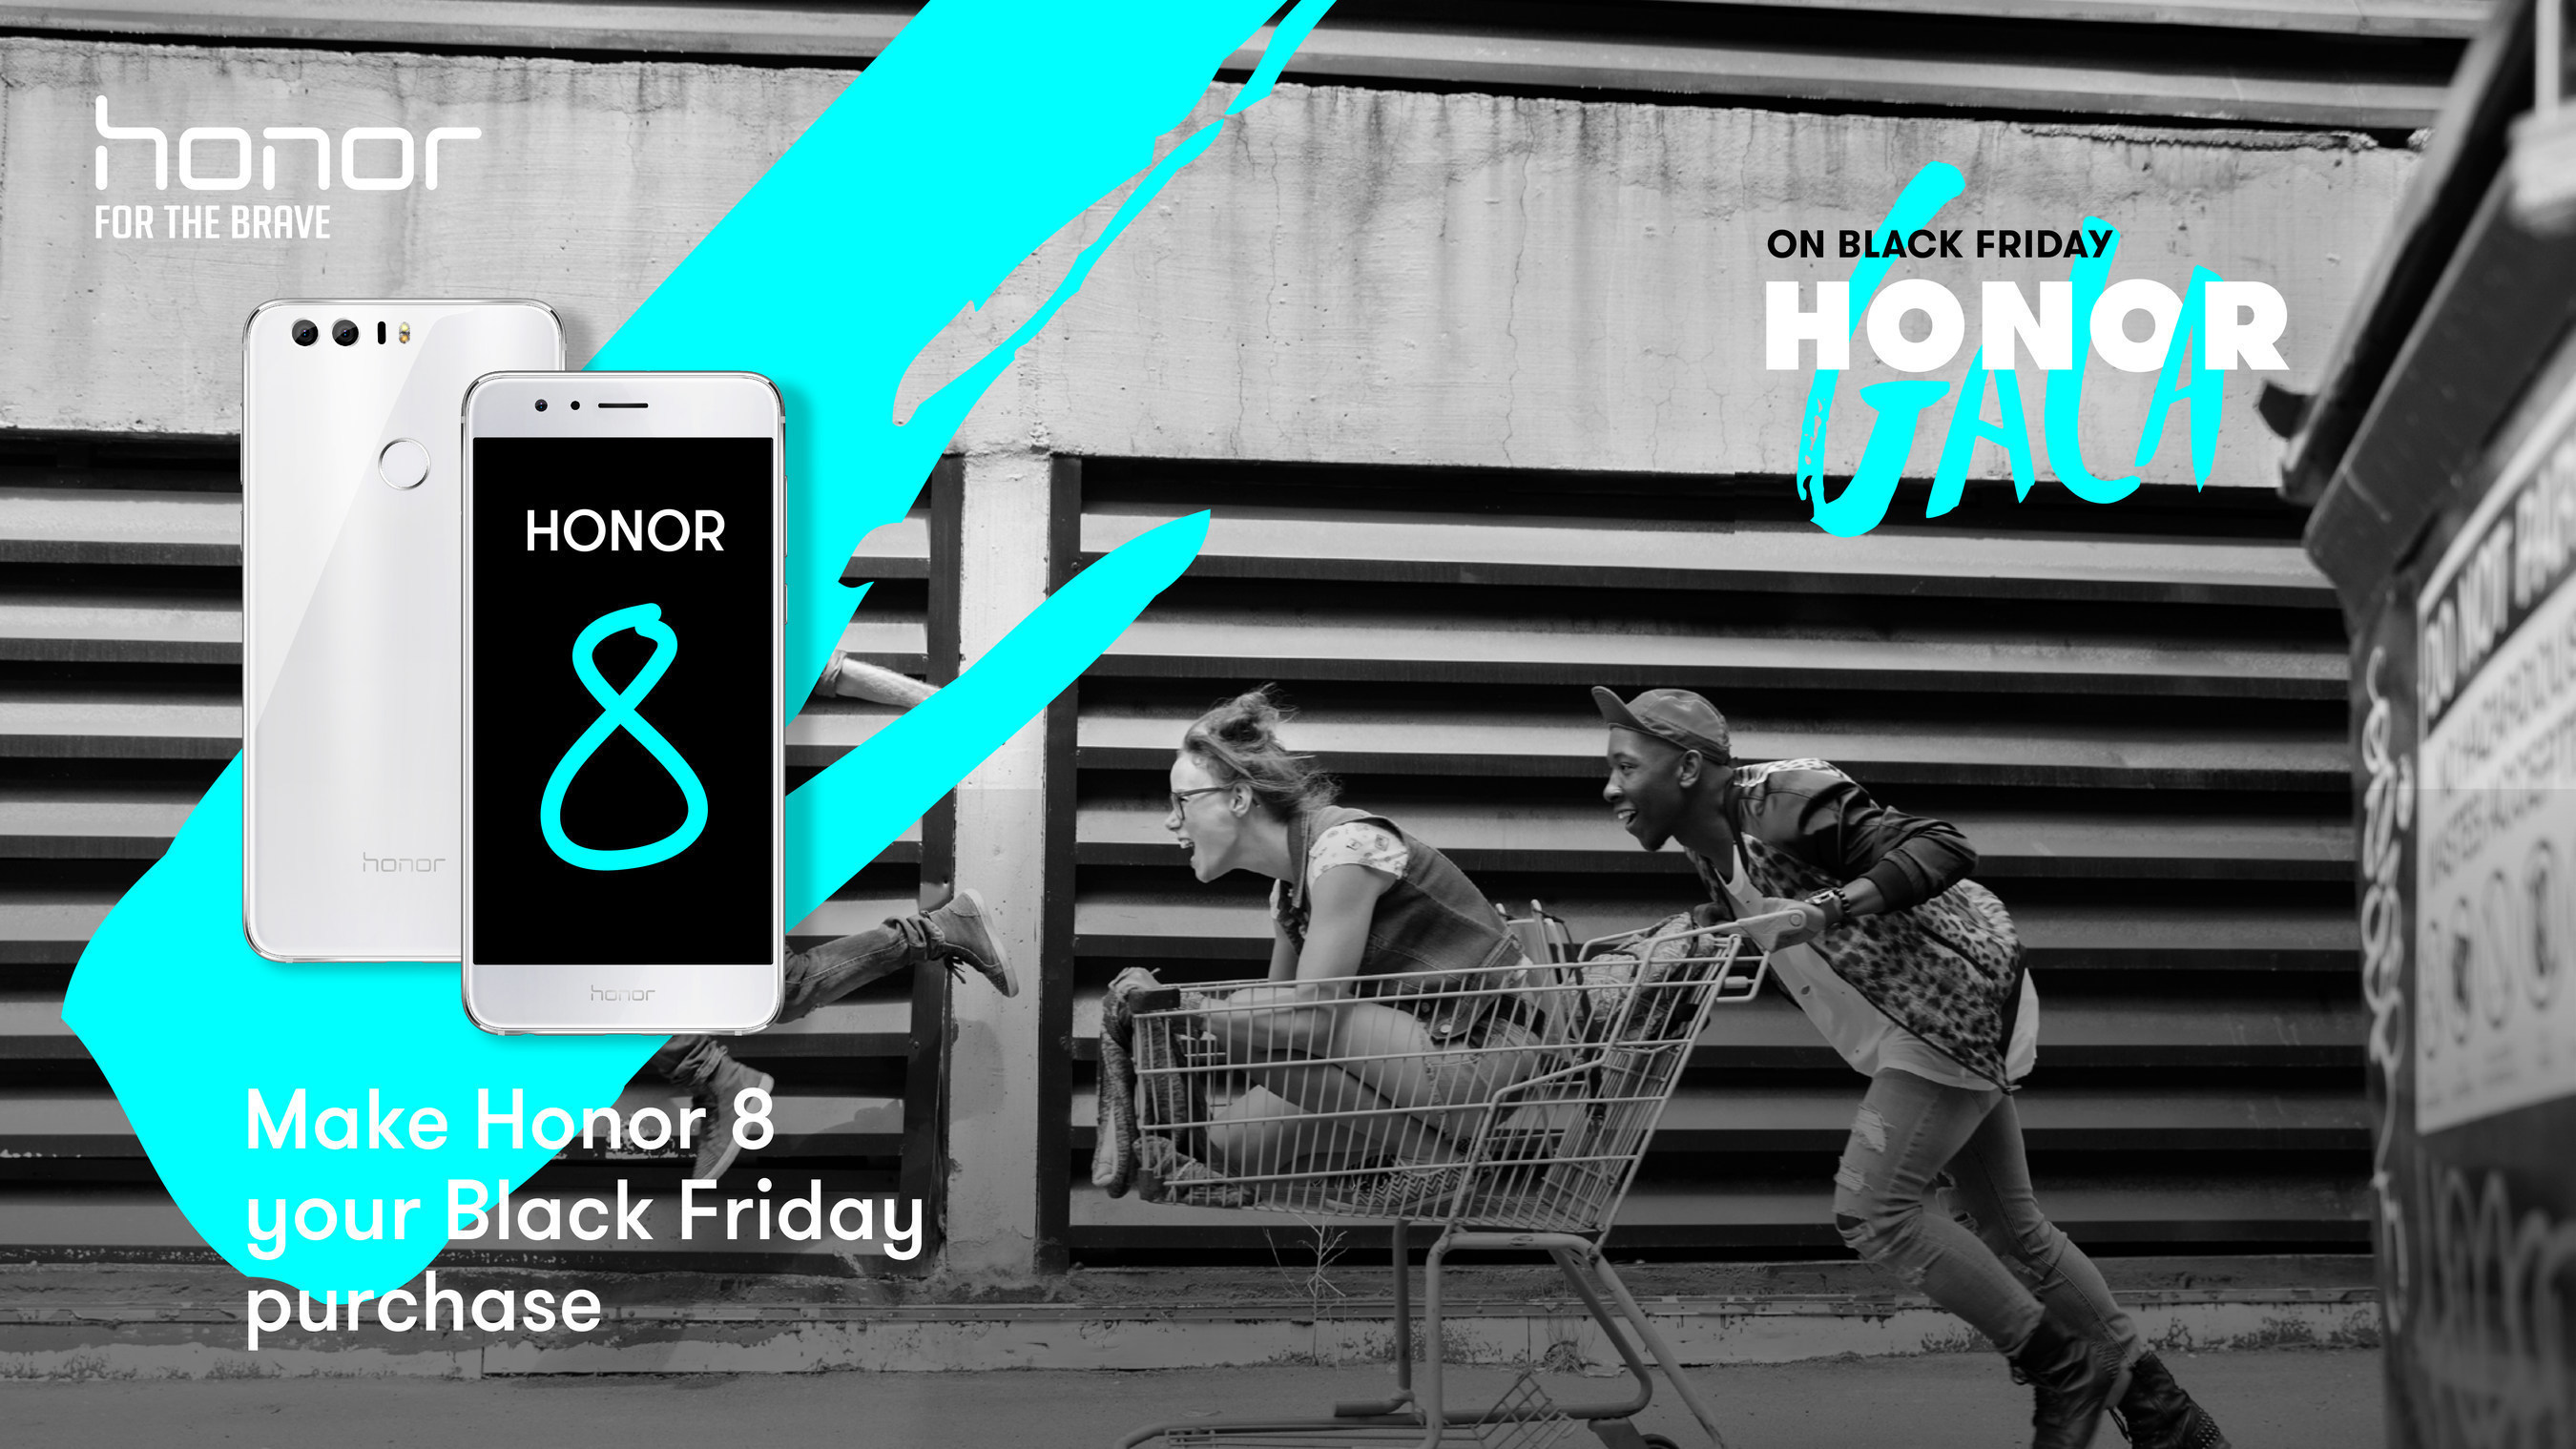 Make Honor 8 your purchase this Black Friday.